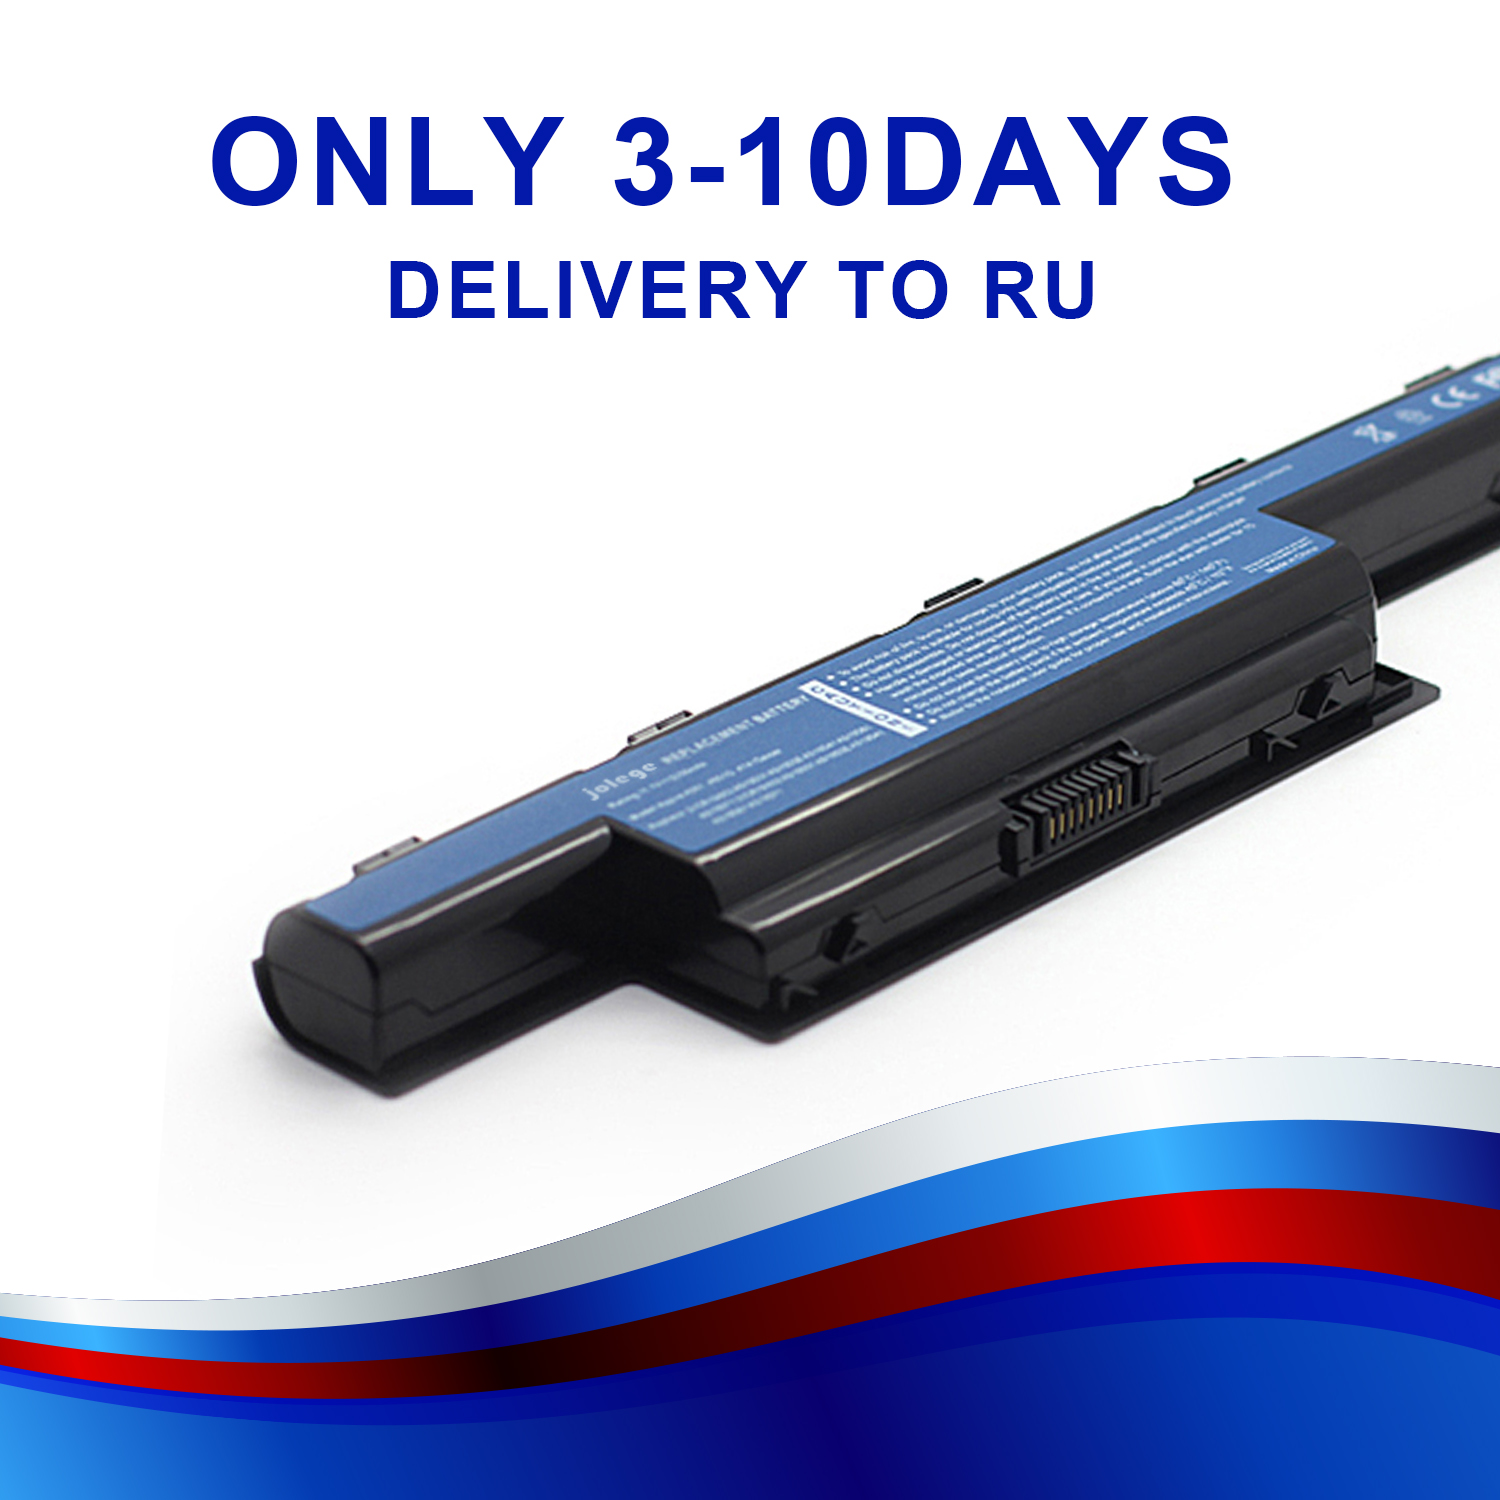 laptop Battery For Acer AS10D31 AS10D51 AS10D81 AS10D75 AS10D61 AS10D41 AS10D71 Aspire 4741 5742G 5552G 5742 5750G 5741G HK03 11 1v laptop battery for acer aspire 4741 5742g 5552g 5742 5750g 5741g as10d31 as10d51 as10d81 as10d75 as10d61 as10d41 as10d71